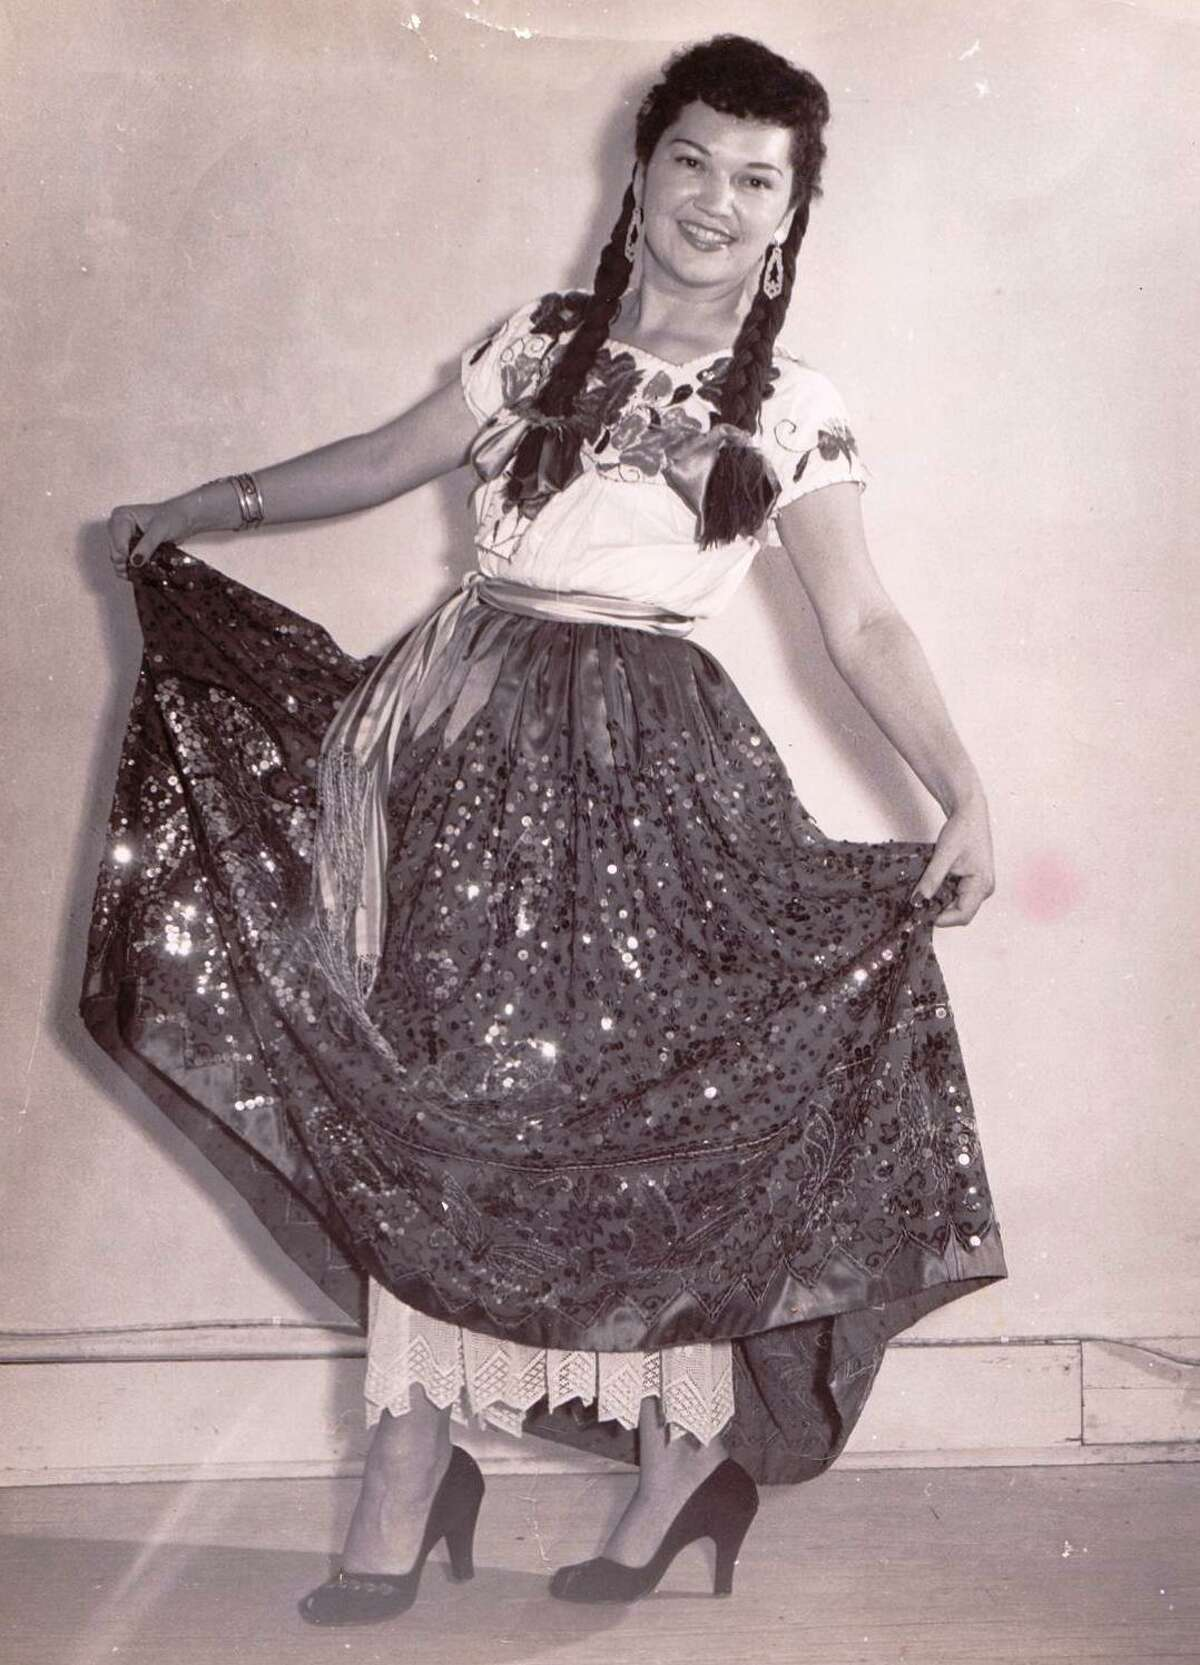 Nelda Drury posed for this photo in the 50s, which is when she founded the San Antonio Folk Dance Festival.